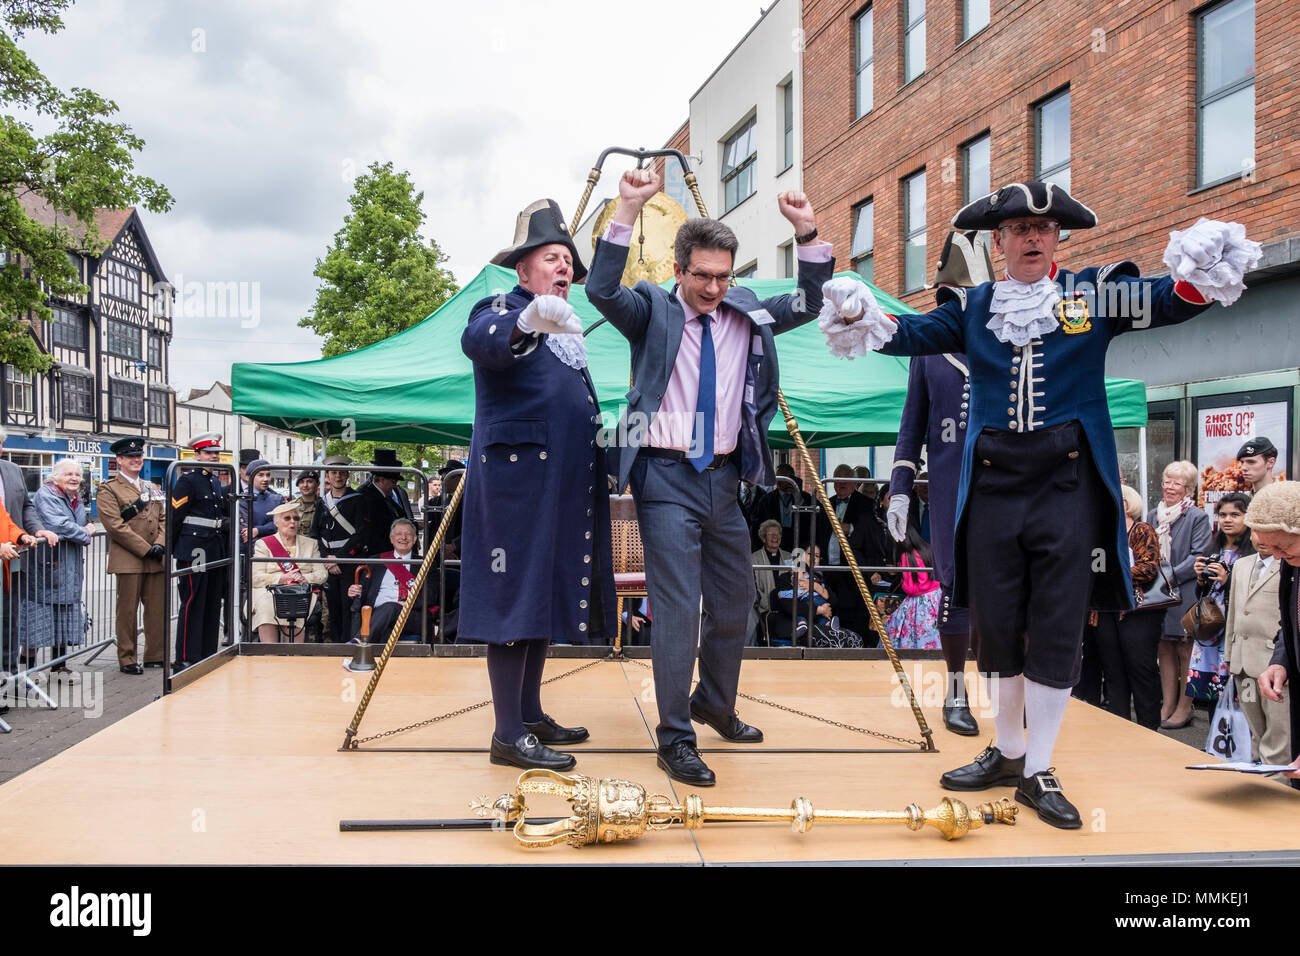 Saturday May 12th 2018. High Wycombe, Buckinghamshire, England, GB, UK. The quaint local tradition of 'Weighing in the Mayor' took place in the town centre today.  Traditionally, the outgoing and incoming mayor and civic officials are weighed at the beginning of the mayor's term of office each year to ascertain if they have gained weight at the expense of the taxpayer. The current MP for the town, Steve Baker, was adjudged to have gained weight and thus heartily booed by the crowd. Credit: D. Callcut/Alamy Live News Stock Photo